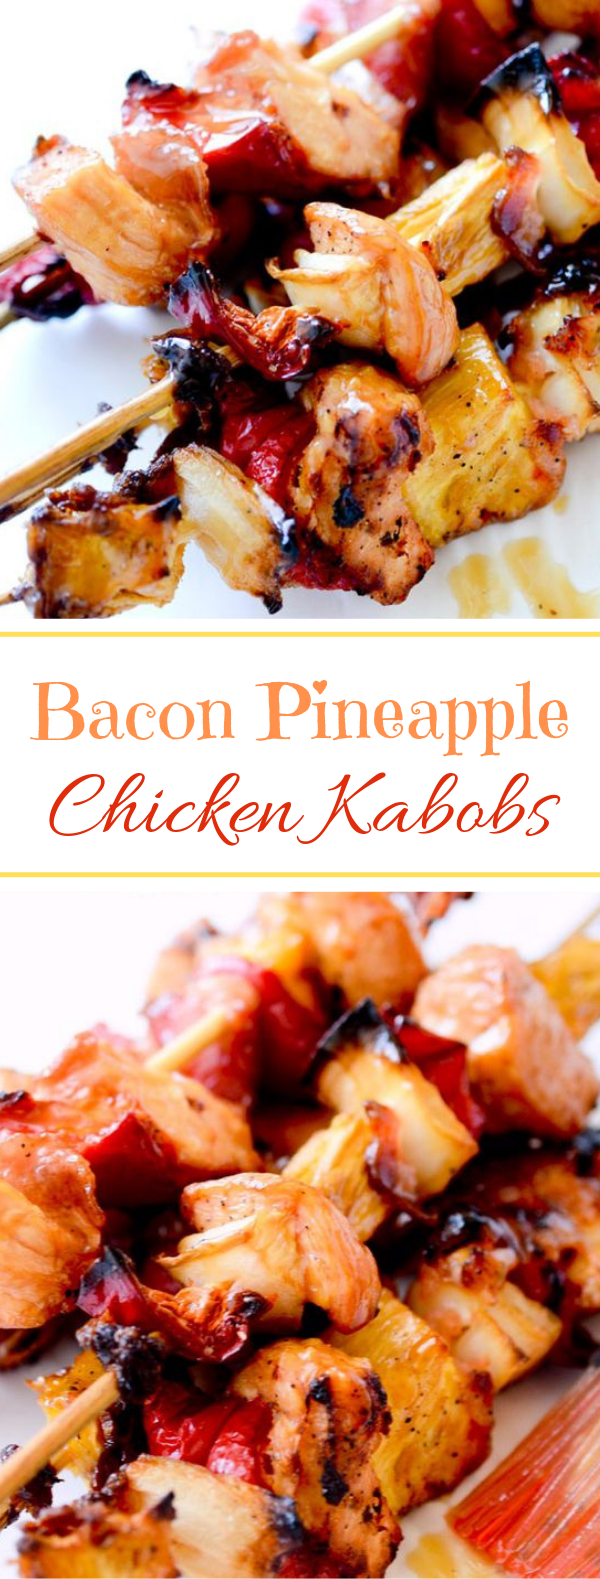 Bacon, Pineapple, Chicken Kabobs #summer #grilled